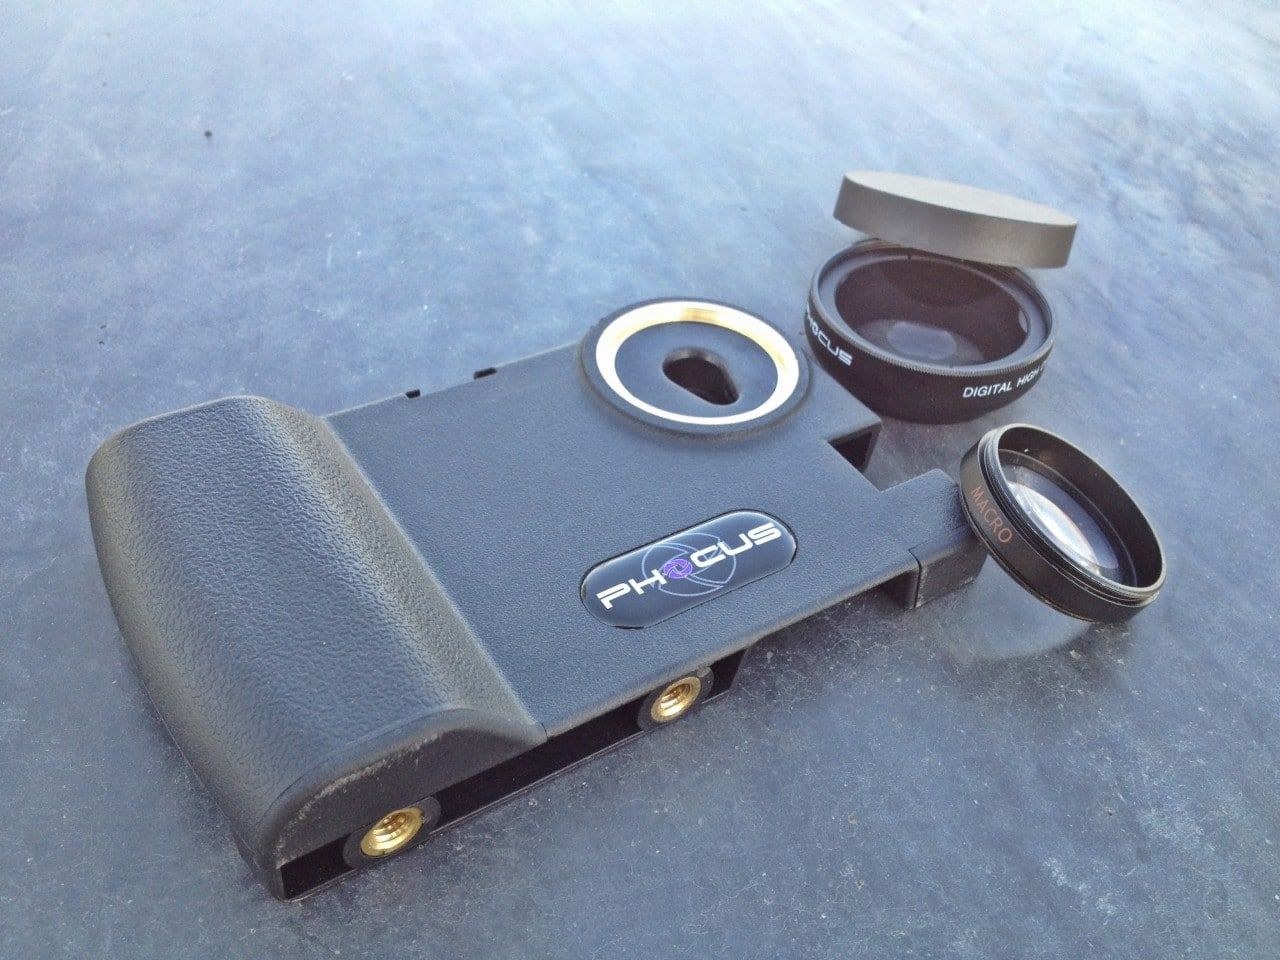 Phocus Case Allows DSLR Lenses To Be Used With Your iPhone